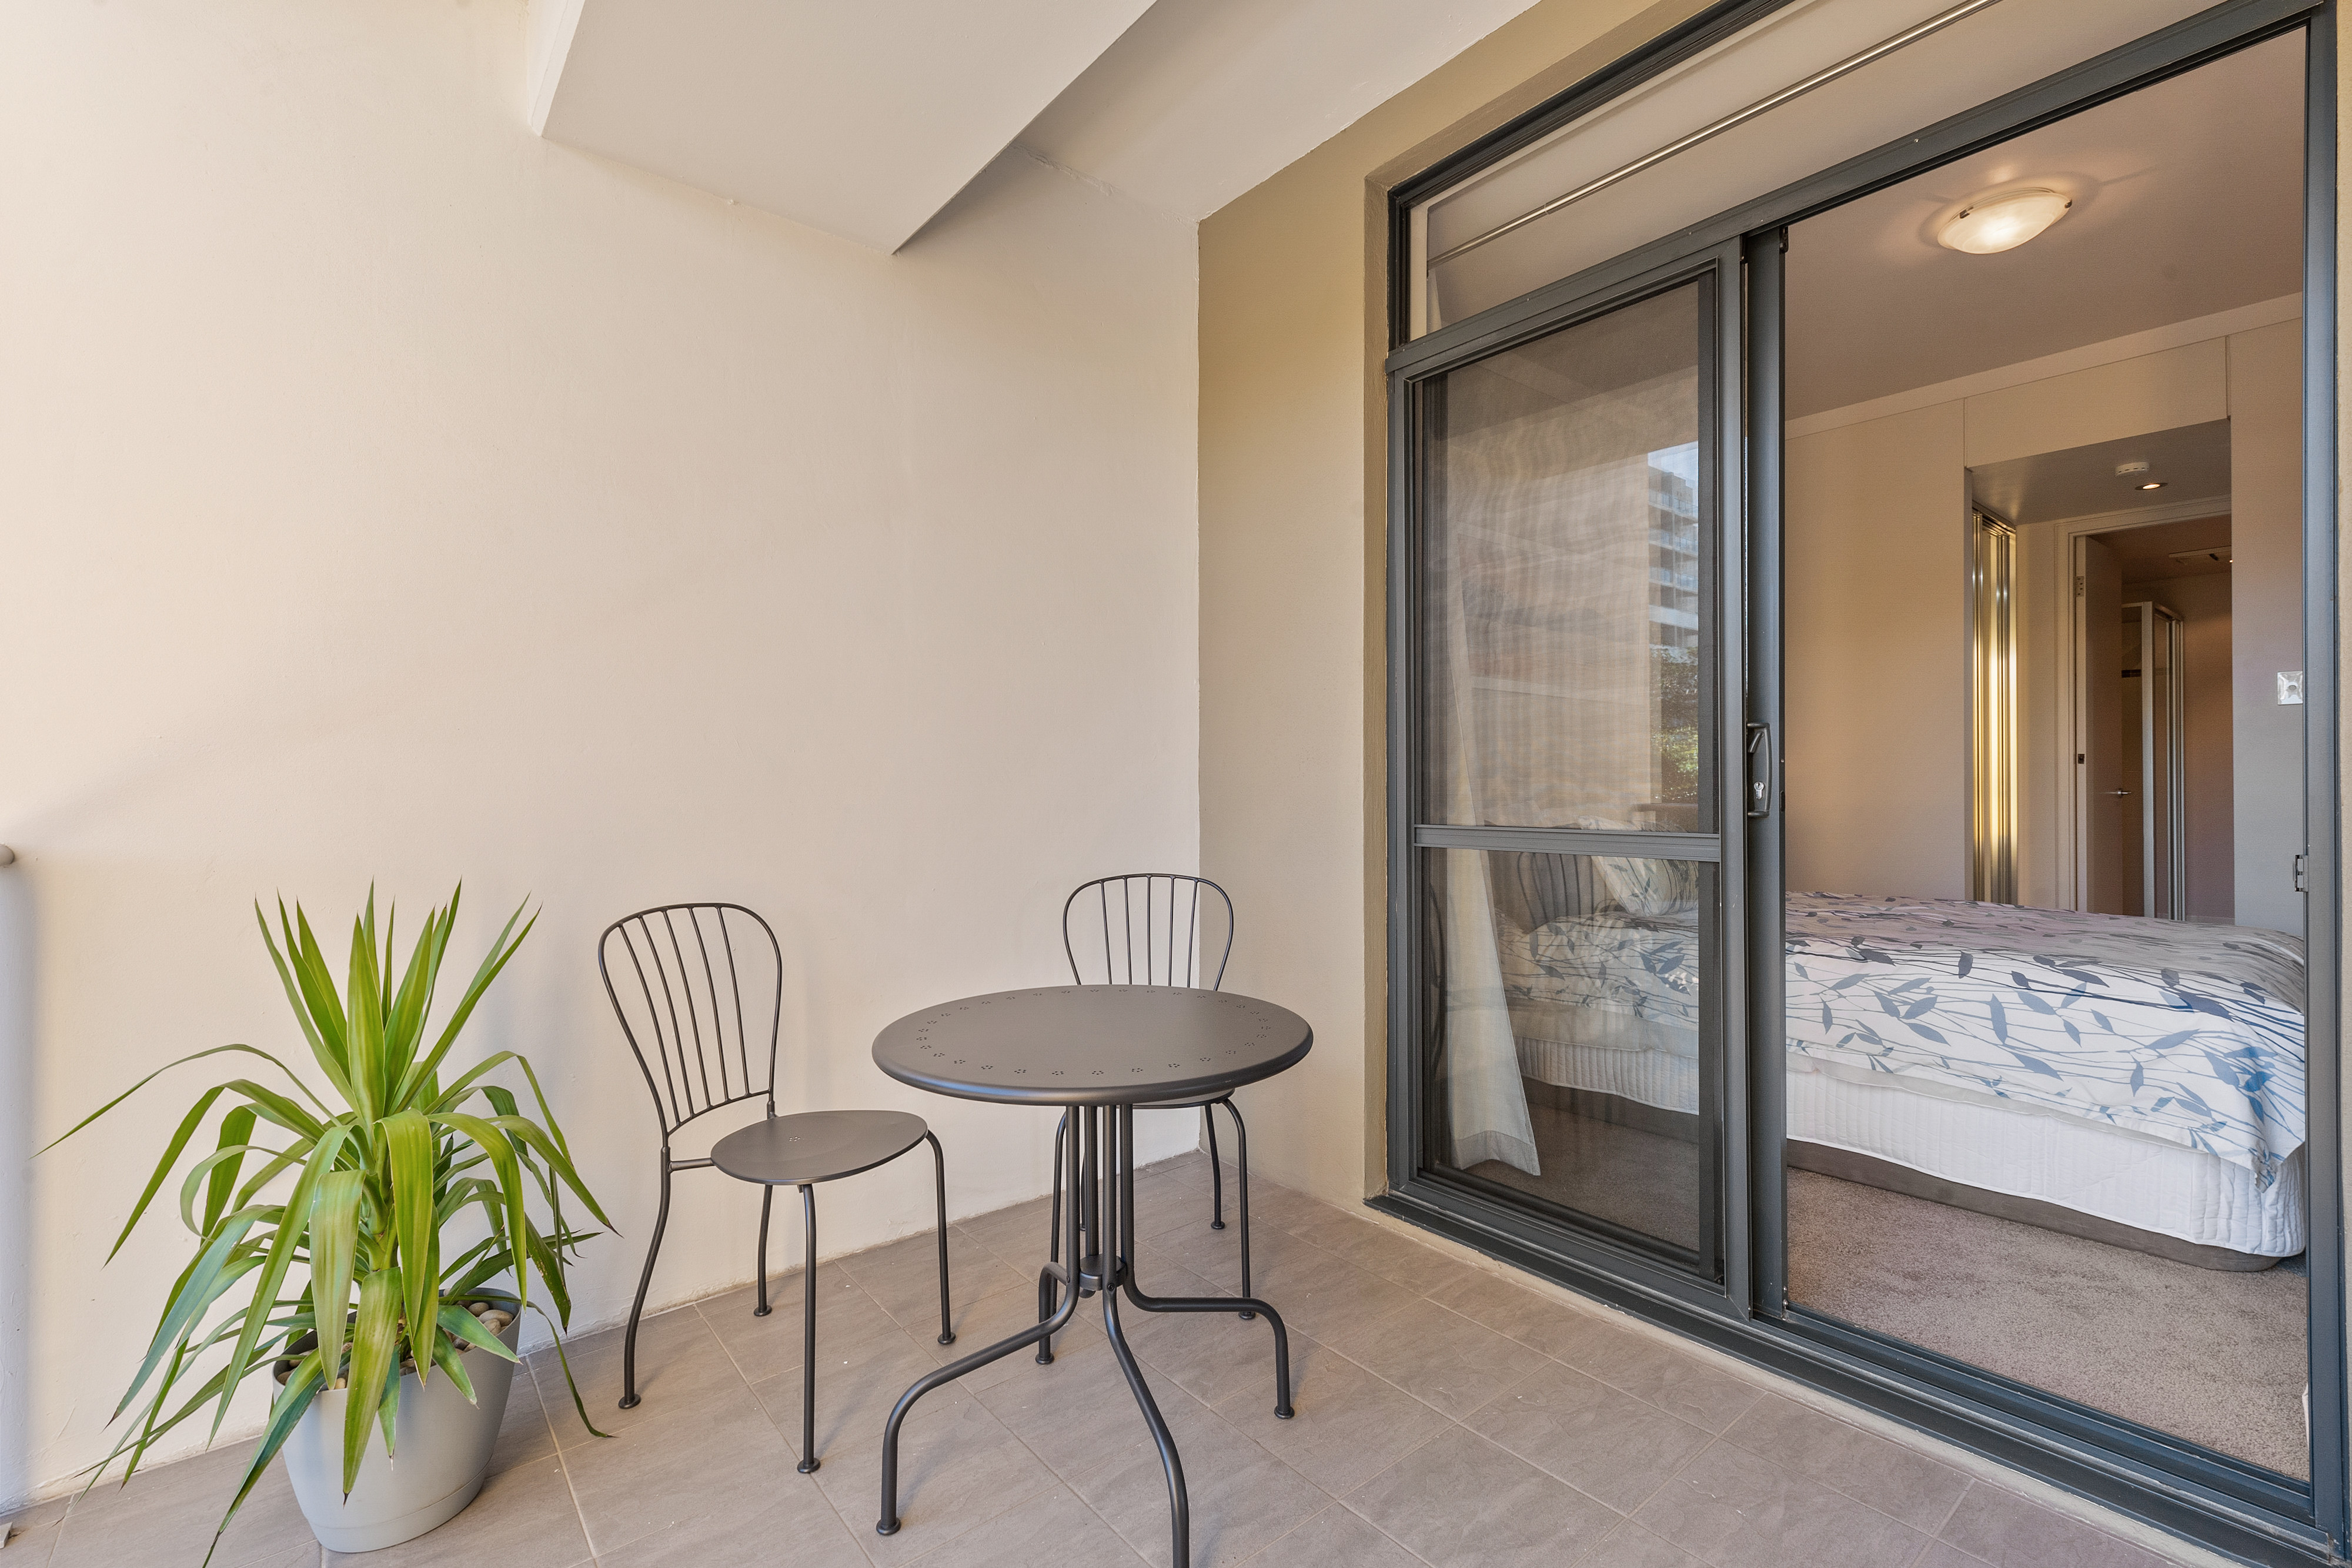 PRINT 202 48 Outram St, West Perth 22